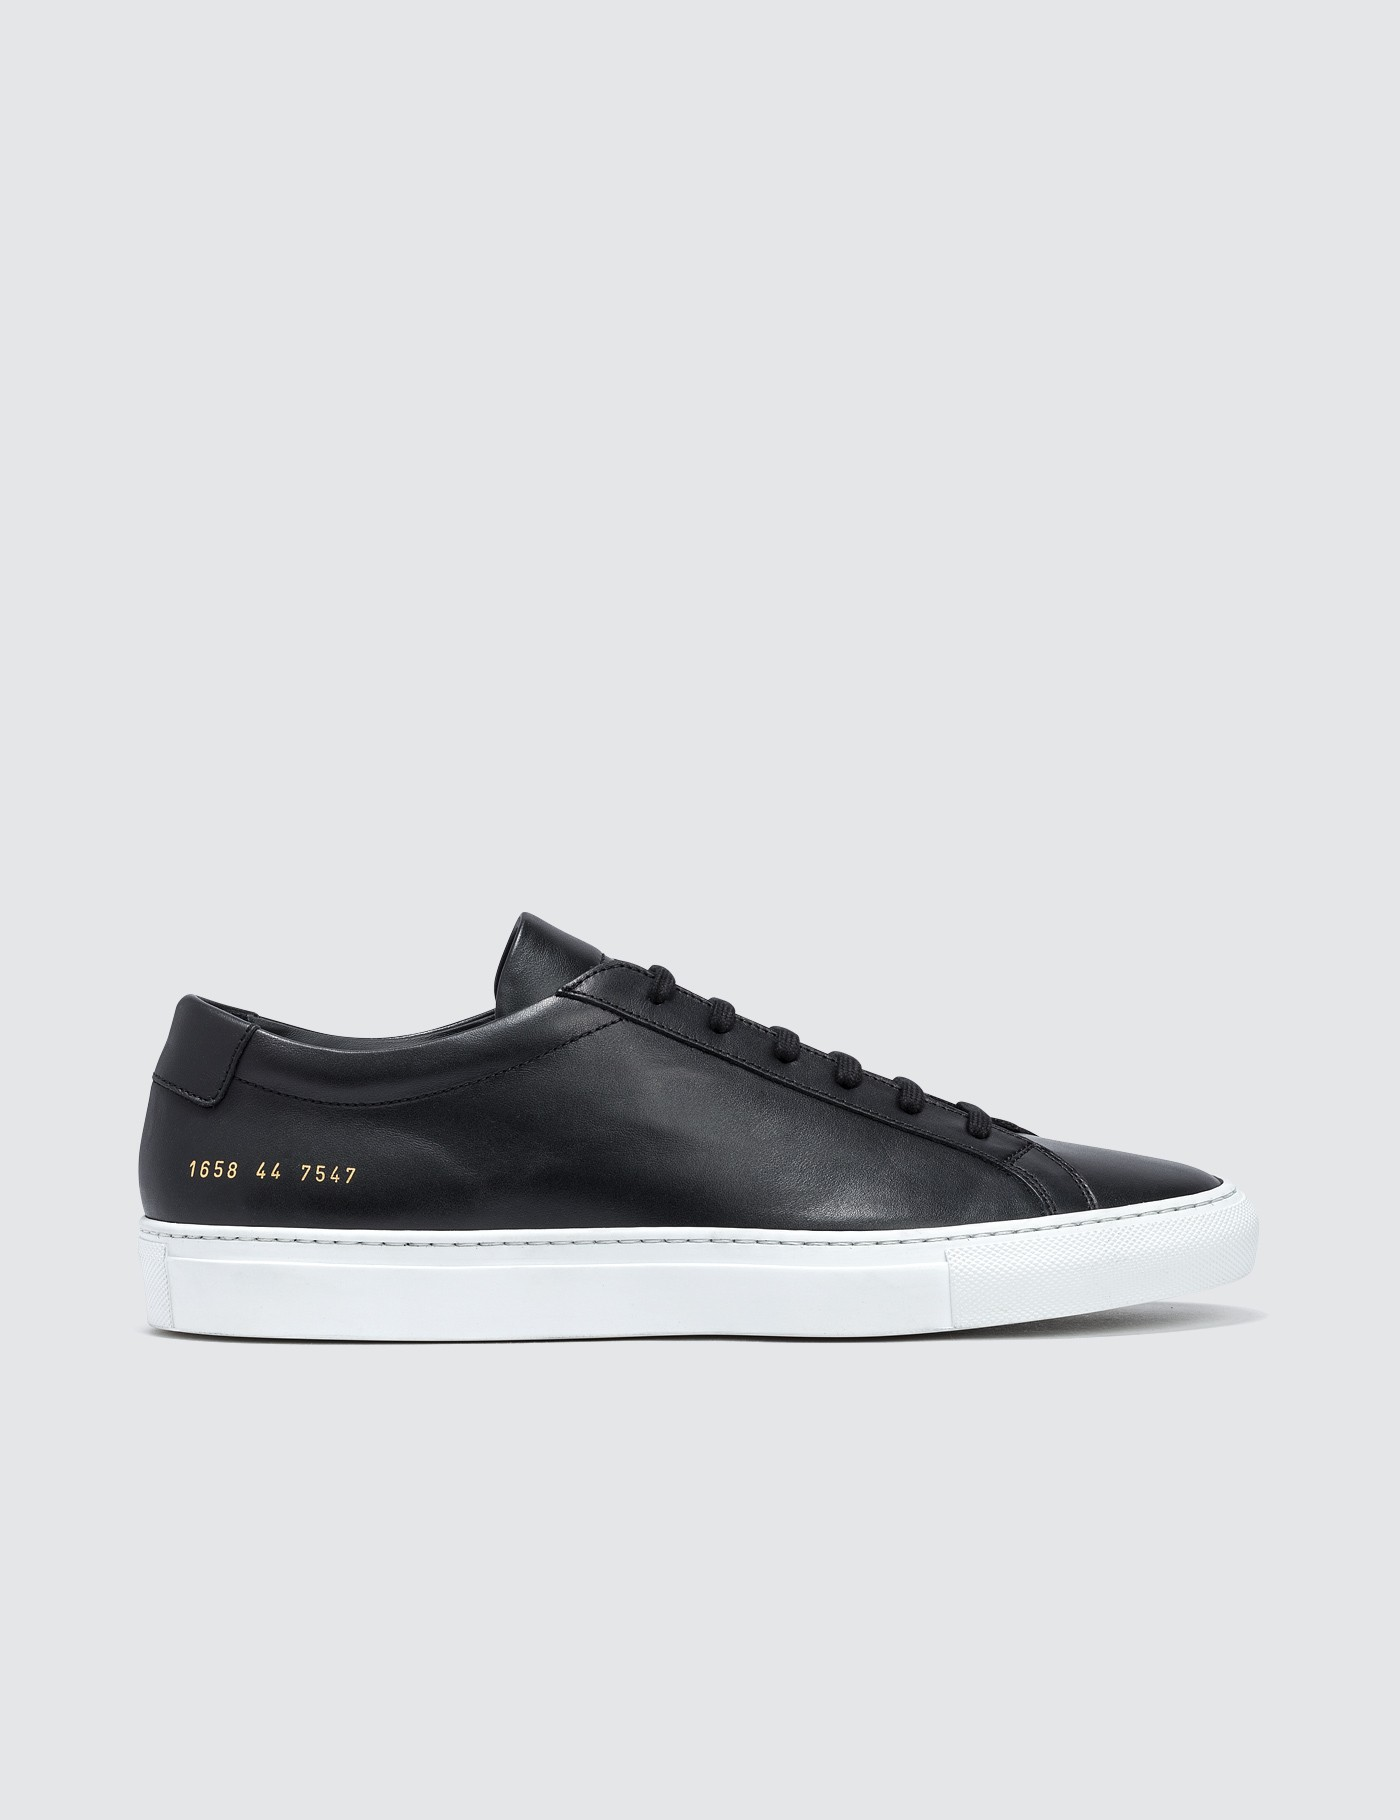 1dcc27ade86 Common Projects Original Achilles Leather sneakers; Common Projects  Original Achilles Leather sneakers ...